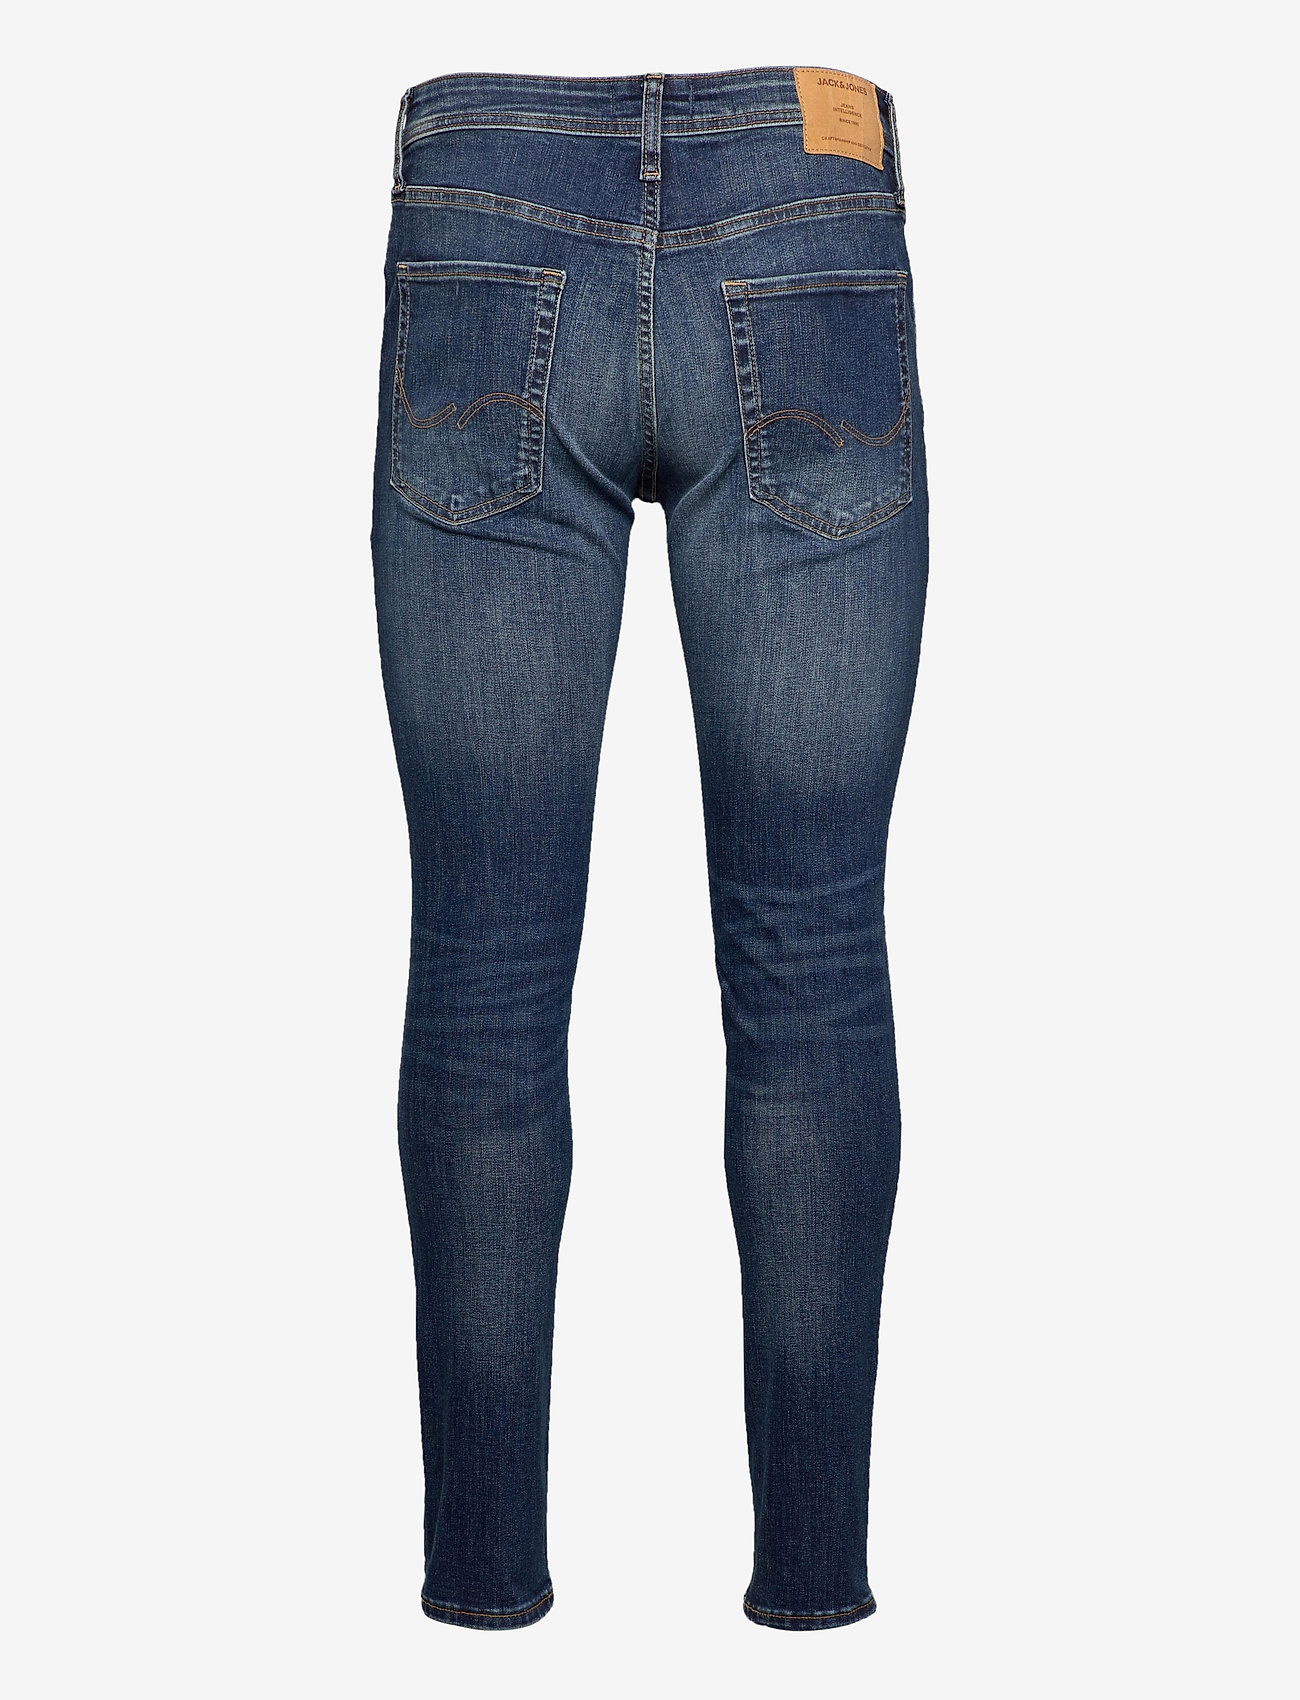 Jack & Jones - JJILIAM JJORIGINAL AGI 005 NOOS - slim jeans - blue denim - 1